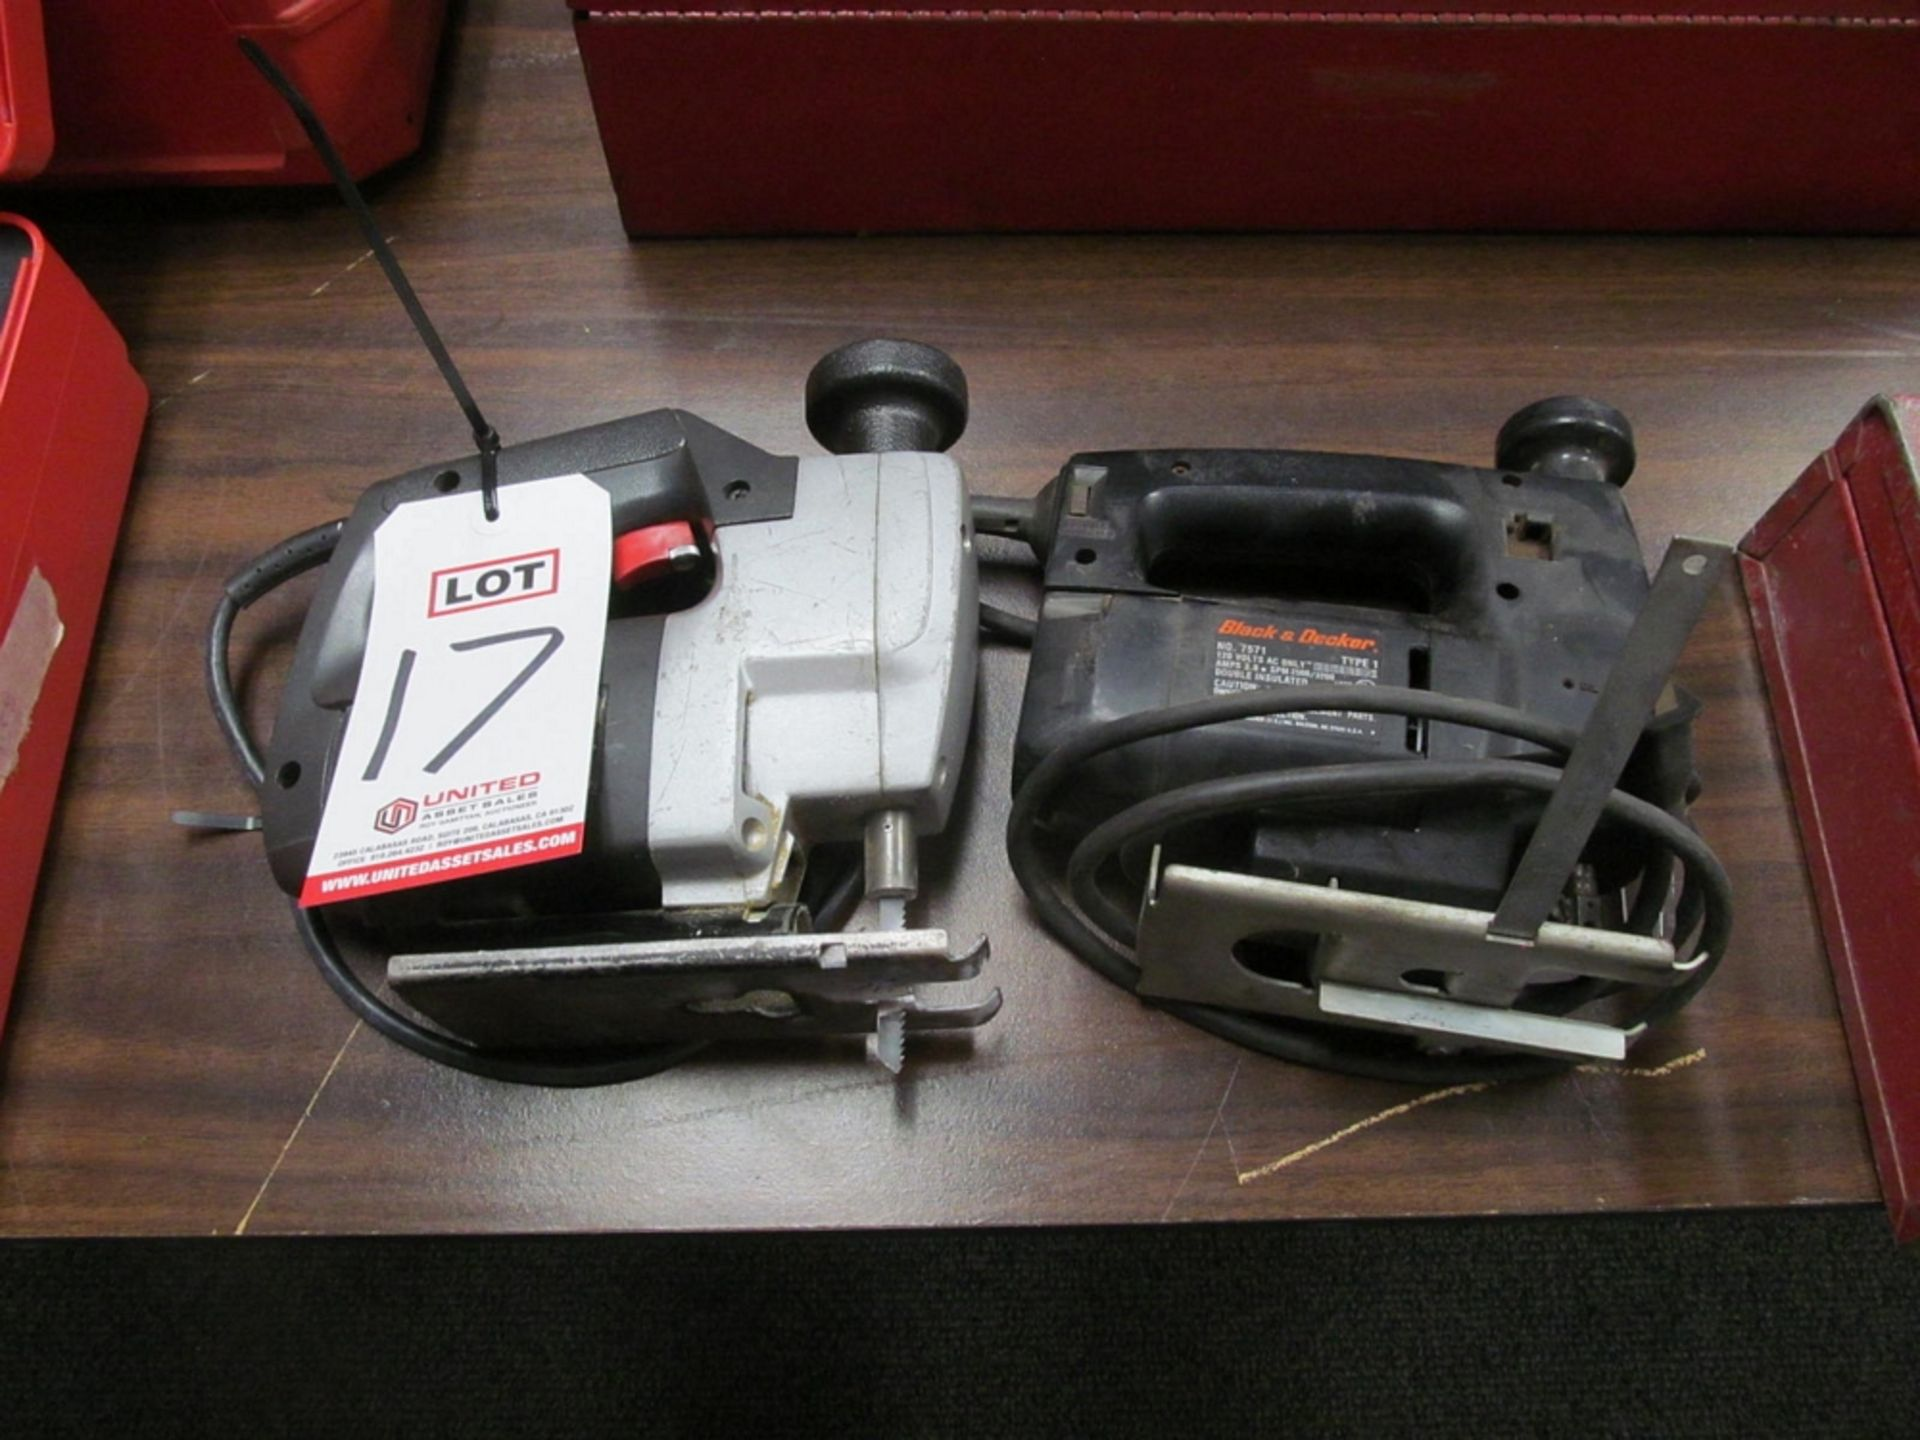 Lot 17 - LOT - (2) JIG SAWS: (1) BLACK & DECKER #7571 AND (1) SKIL #4535